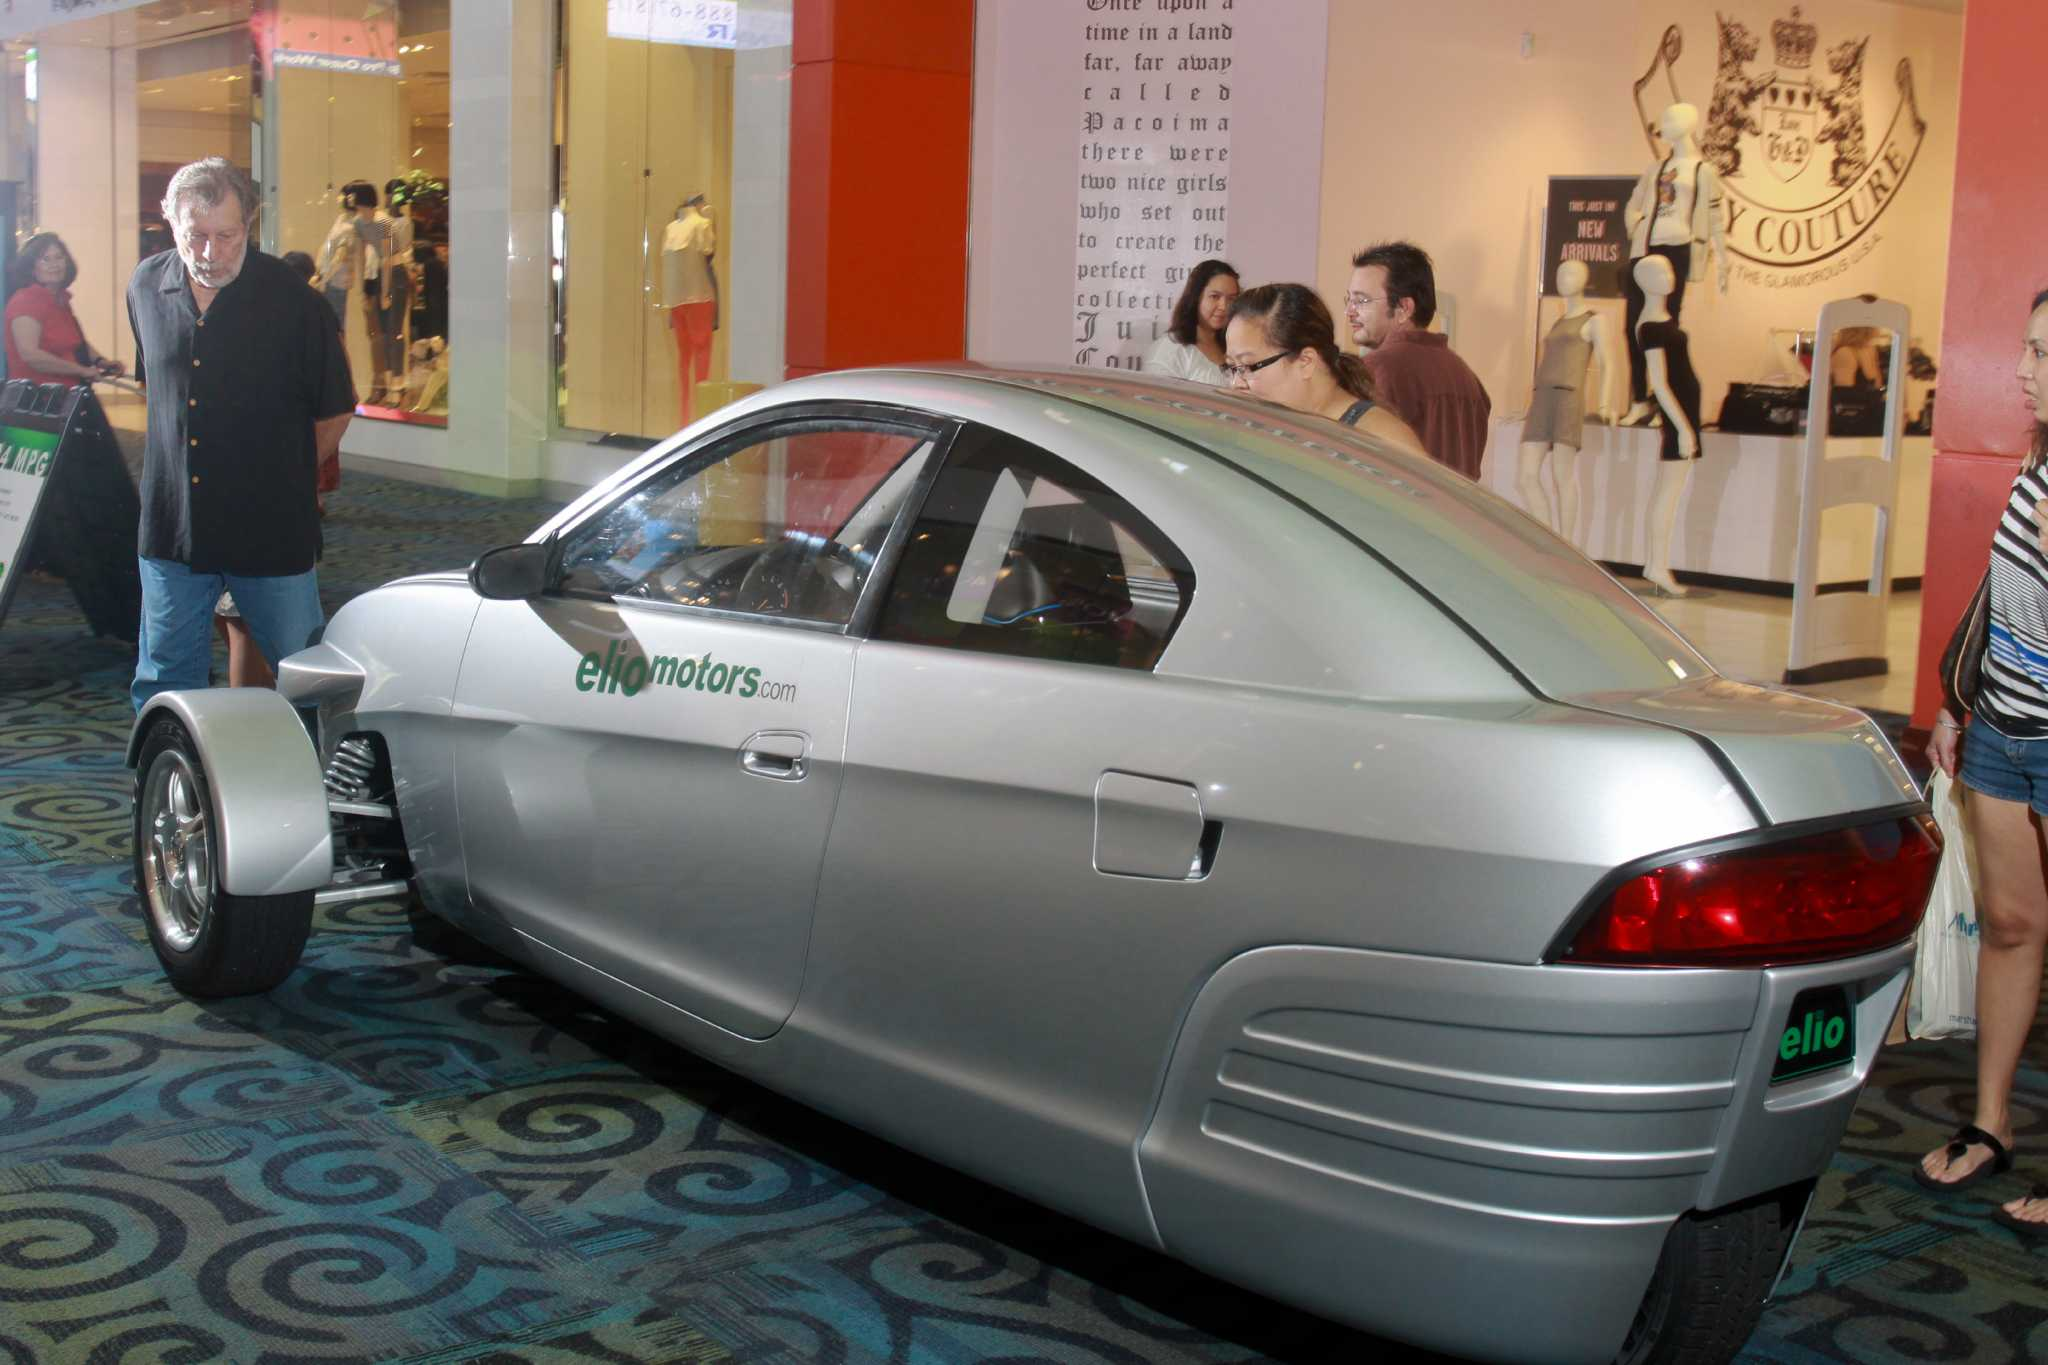 the elio draws attention at katy mills it has a engine